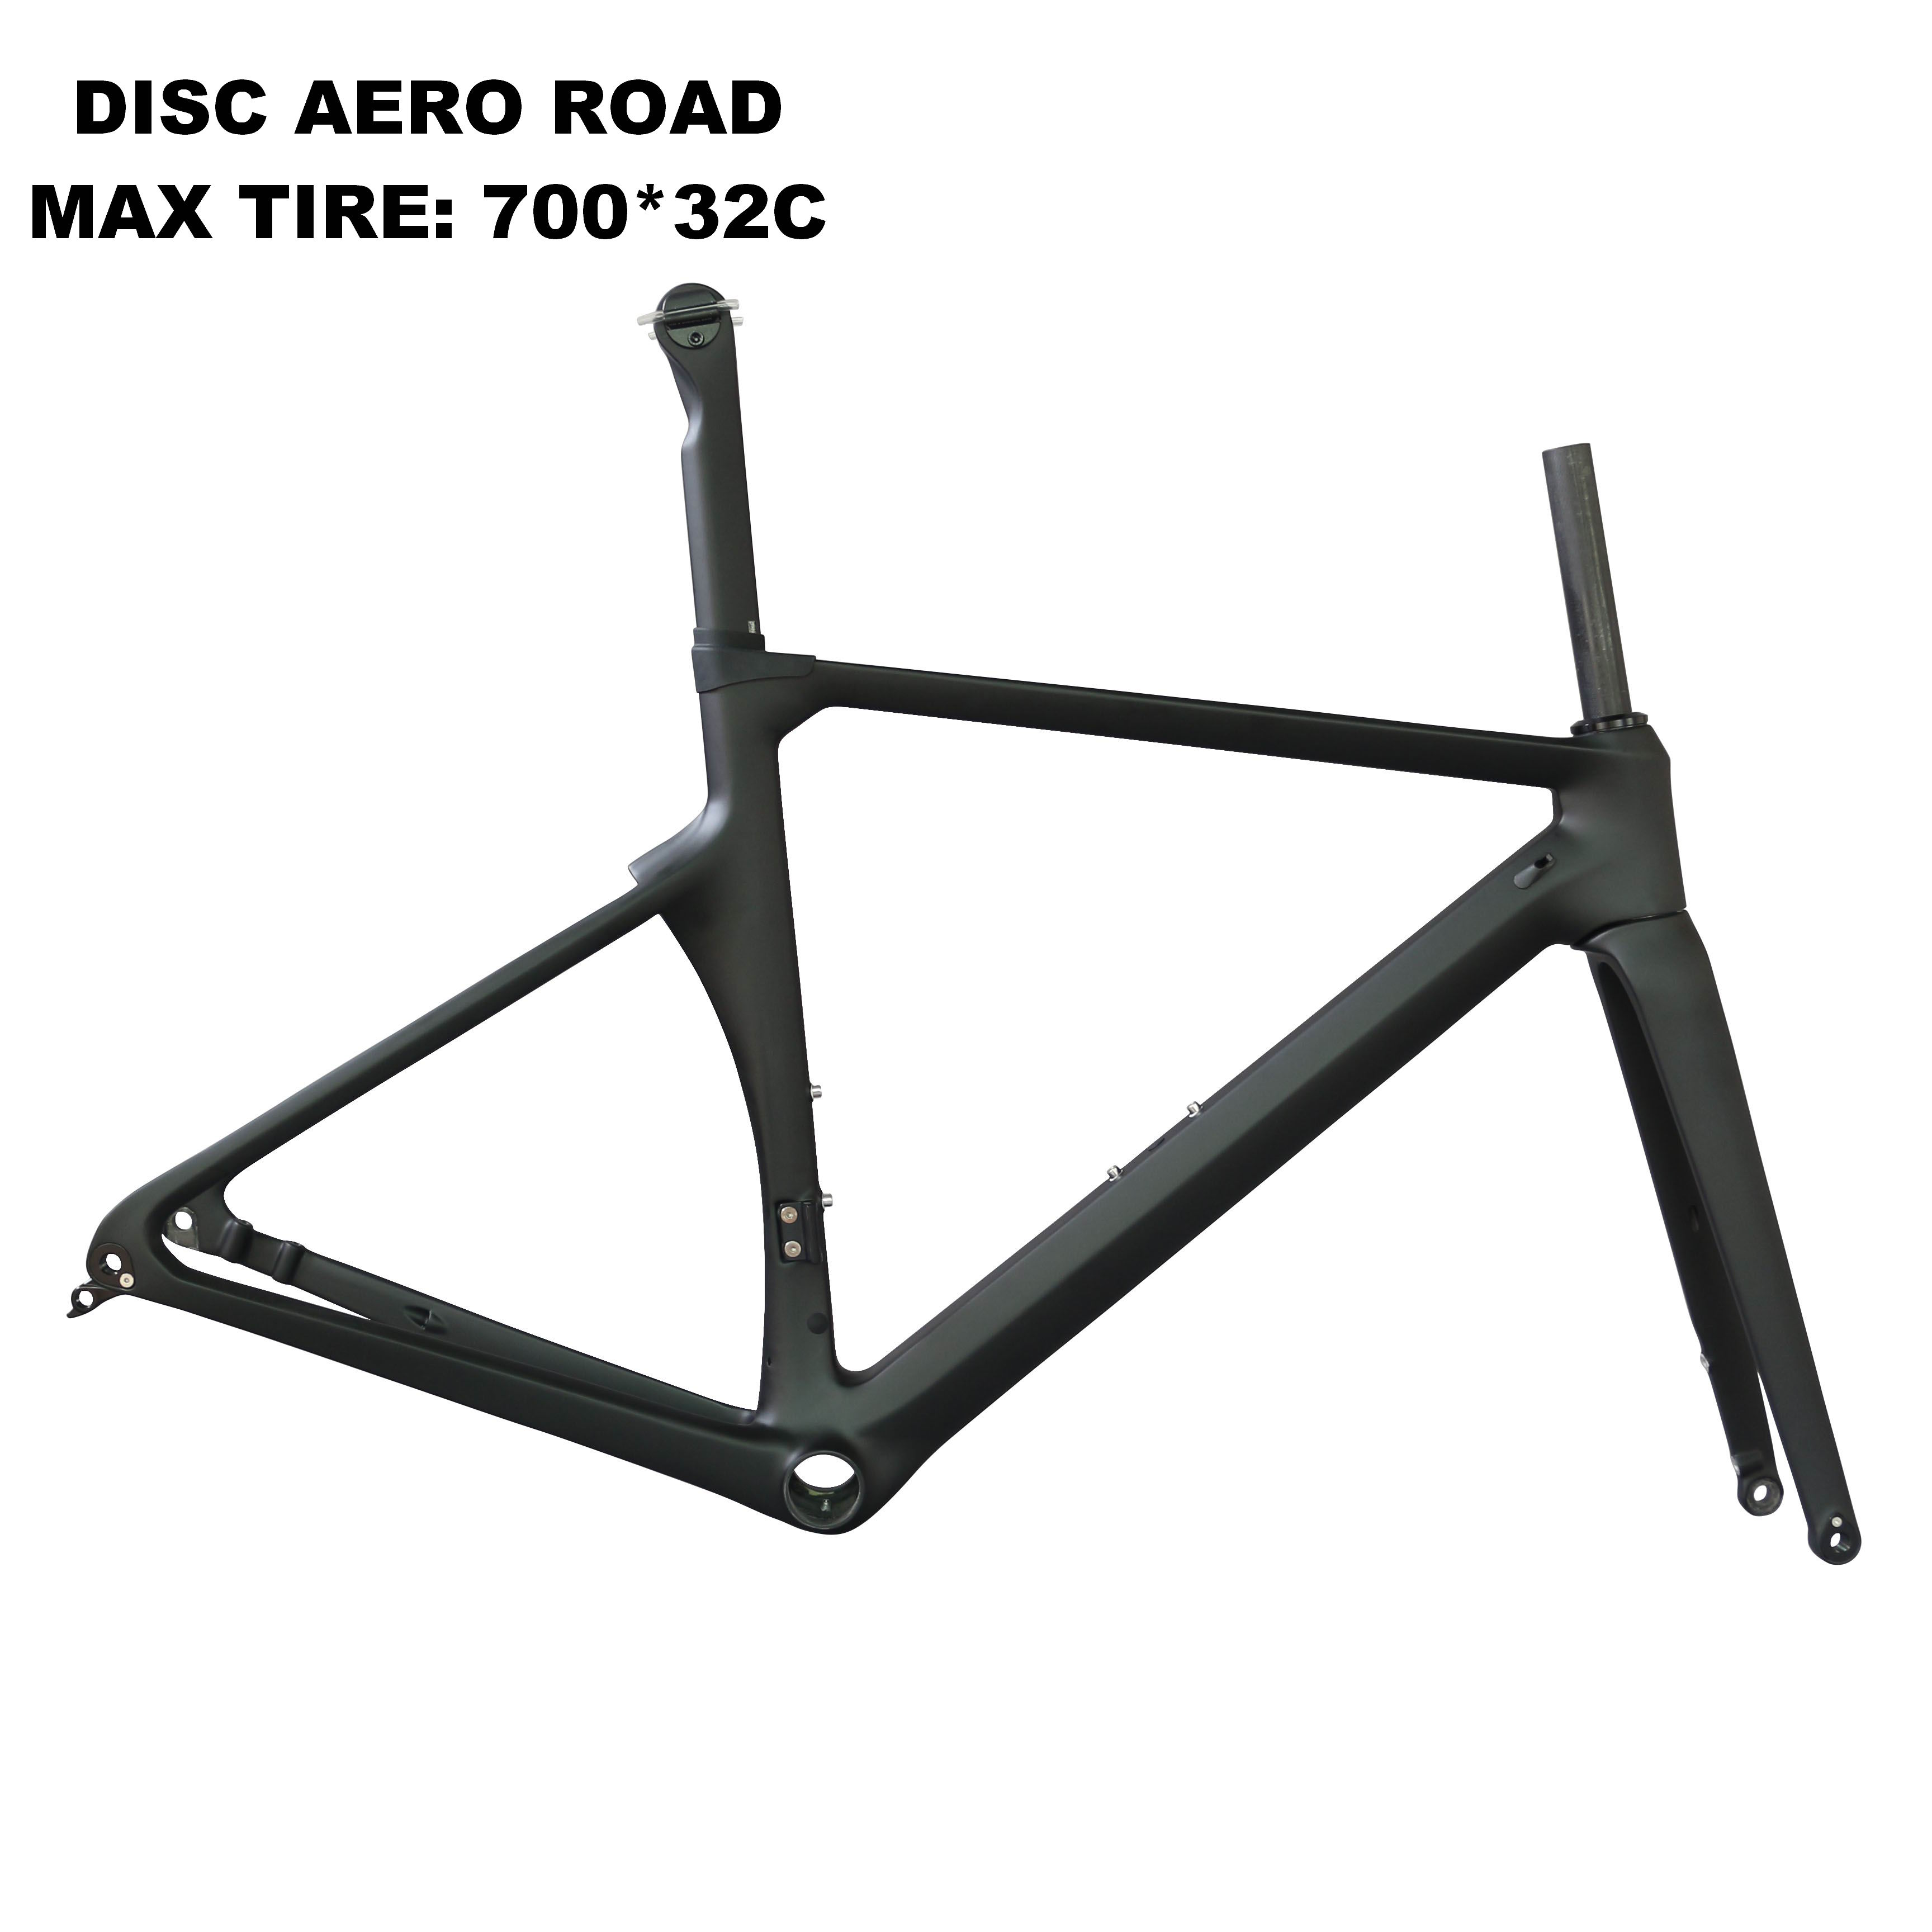 Aero Disc Road Carbon Frame Toray T800 Carbon Fiber Max Tire 700*32C Road Racing Frame TT-x16 Accept Customized Design